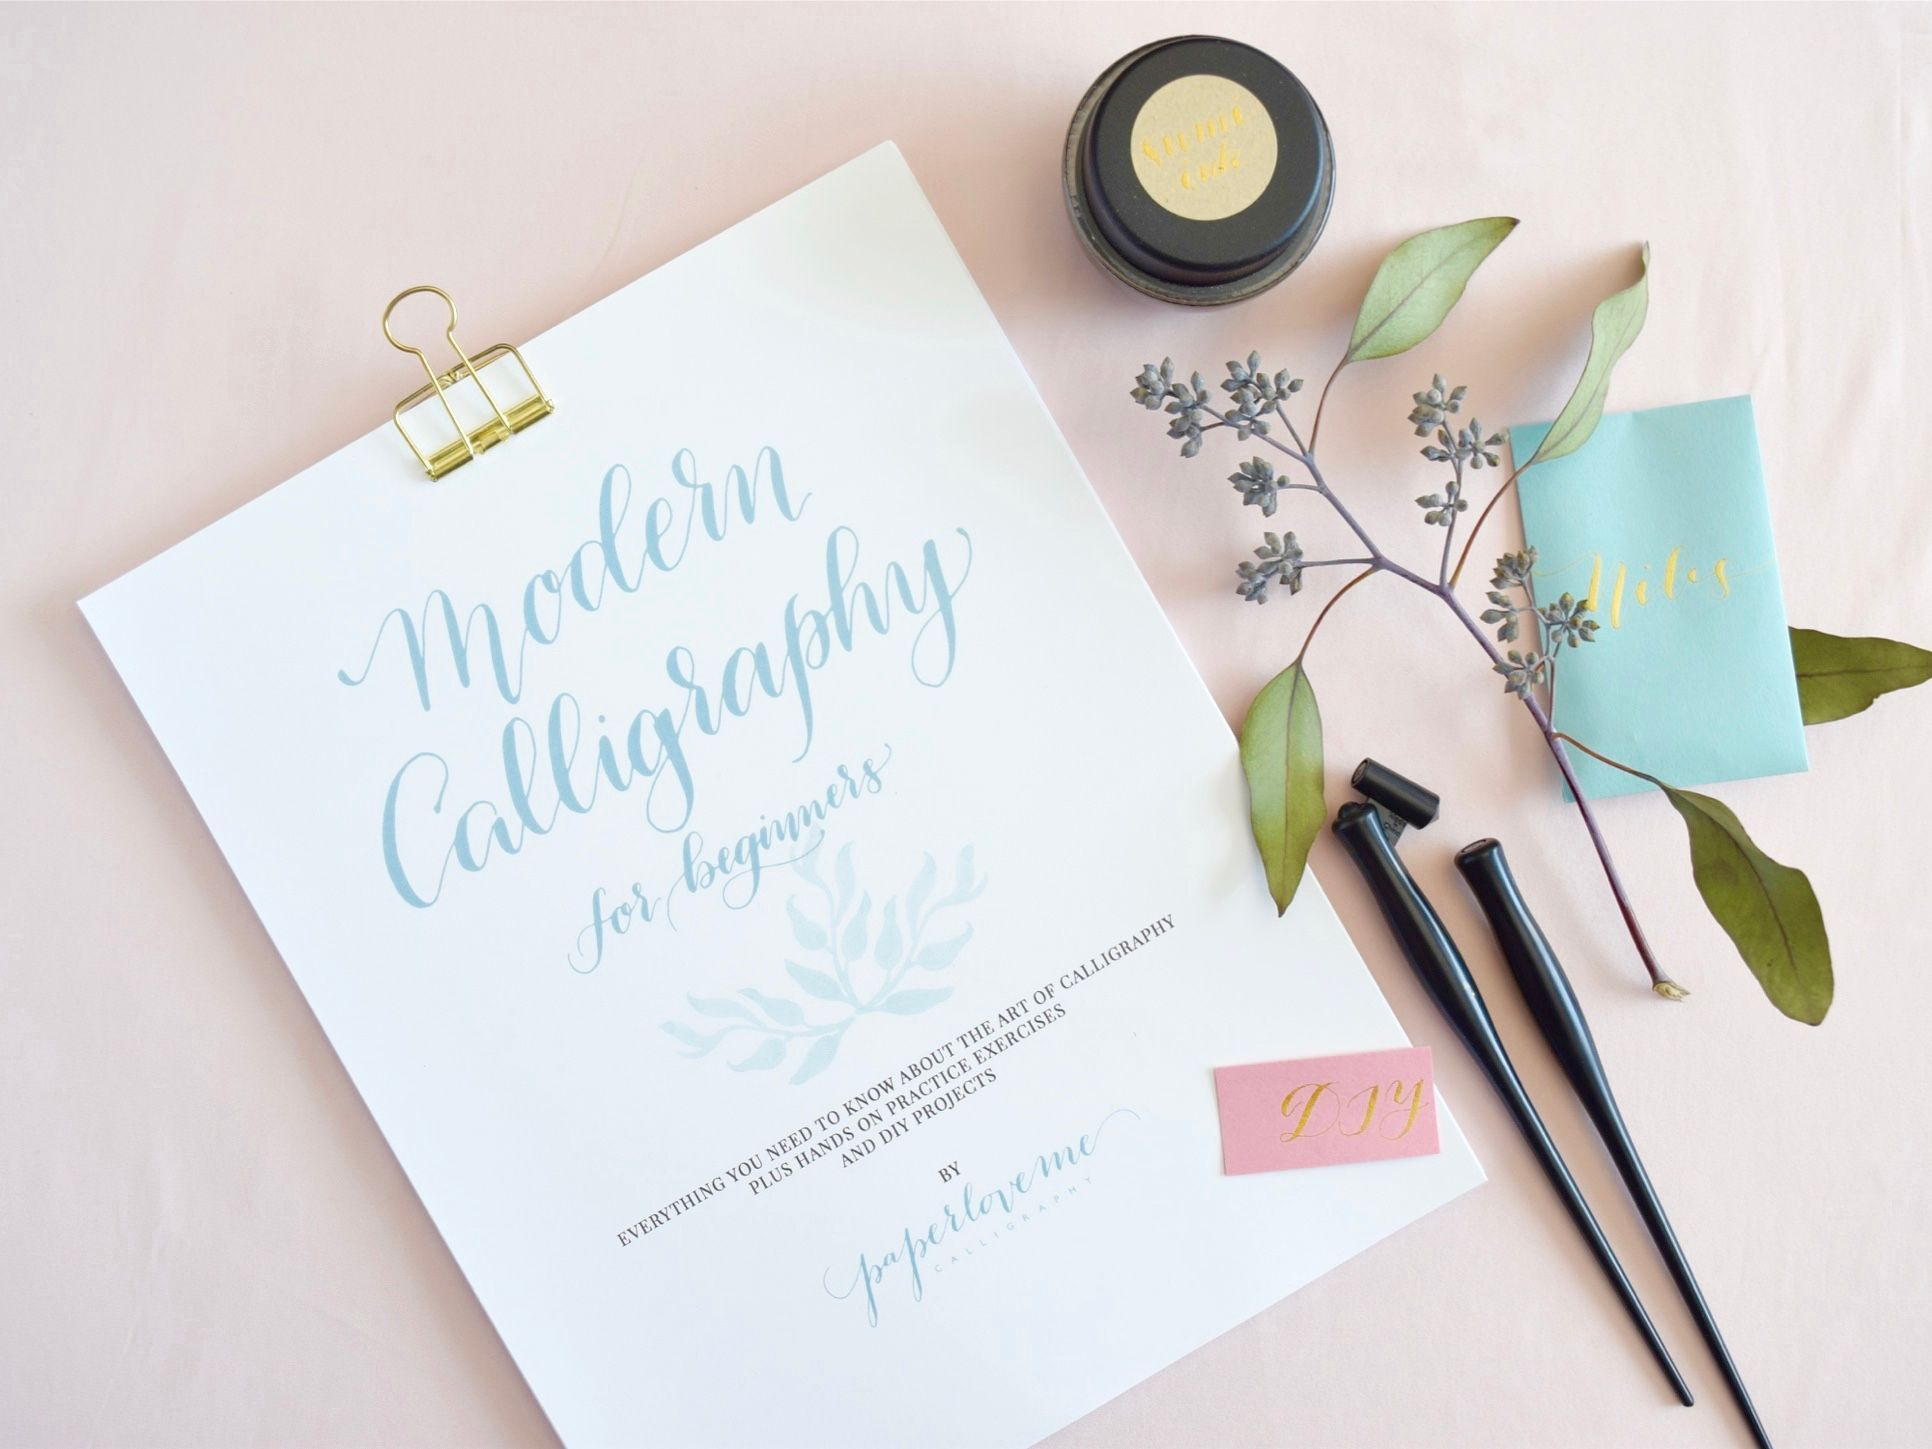 My modern calligraphy for beginners workbook and tool set is for